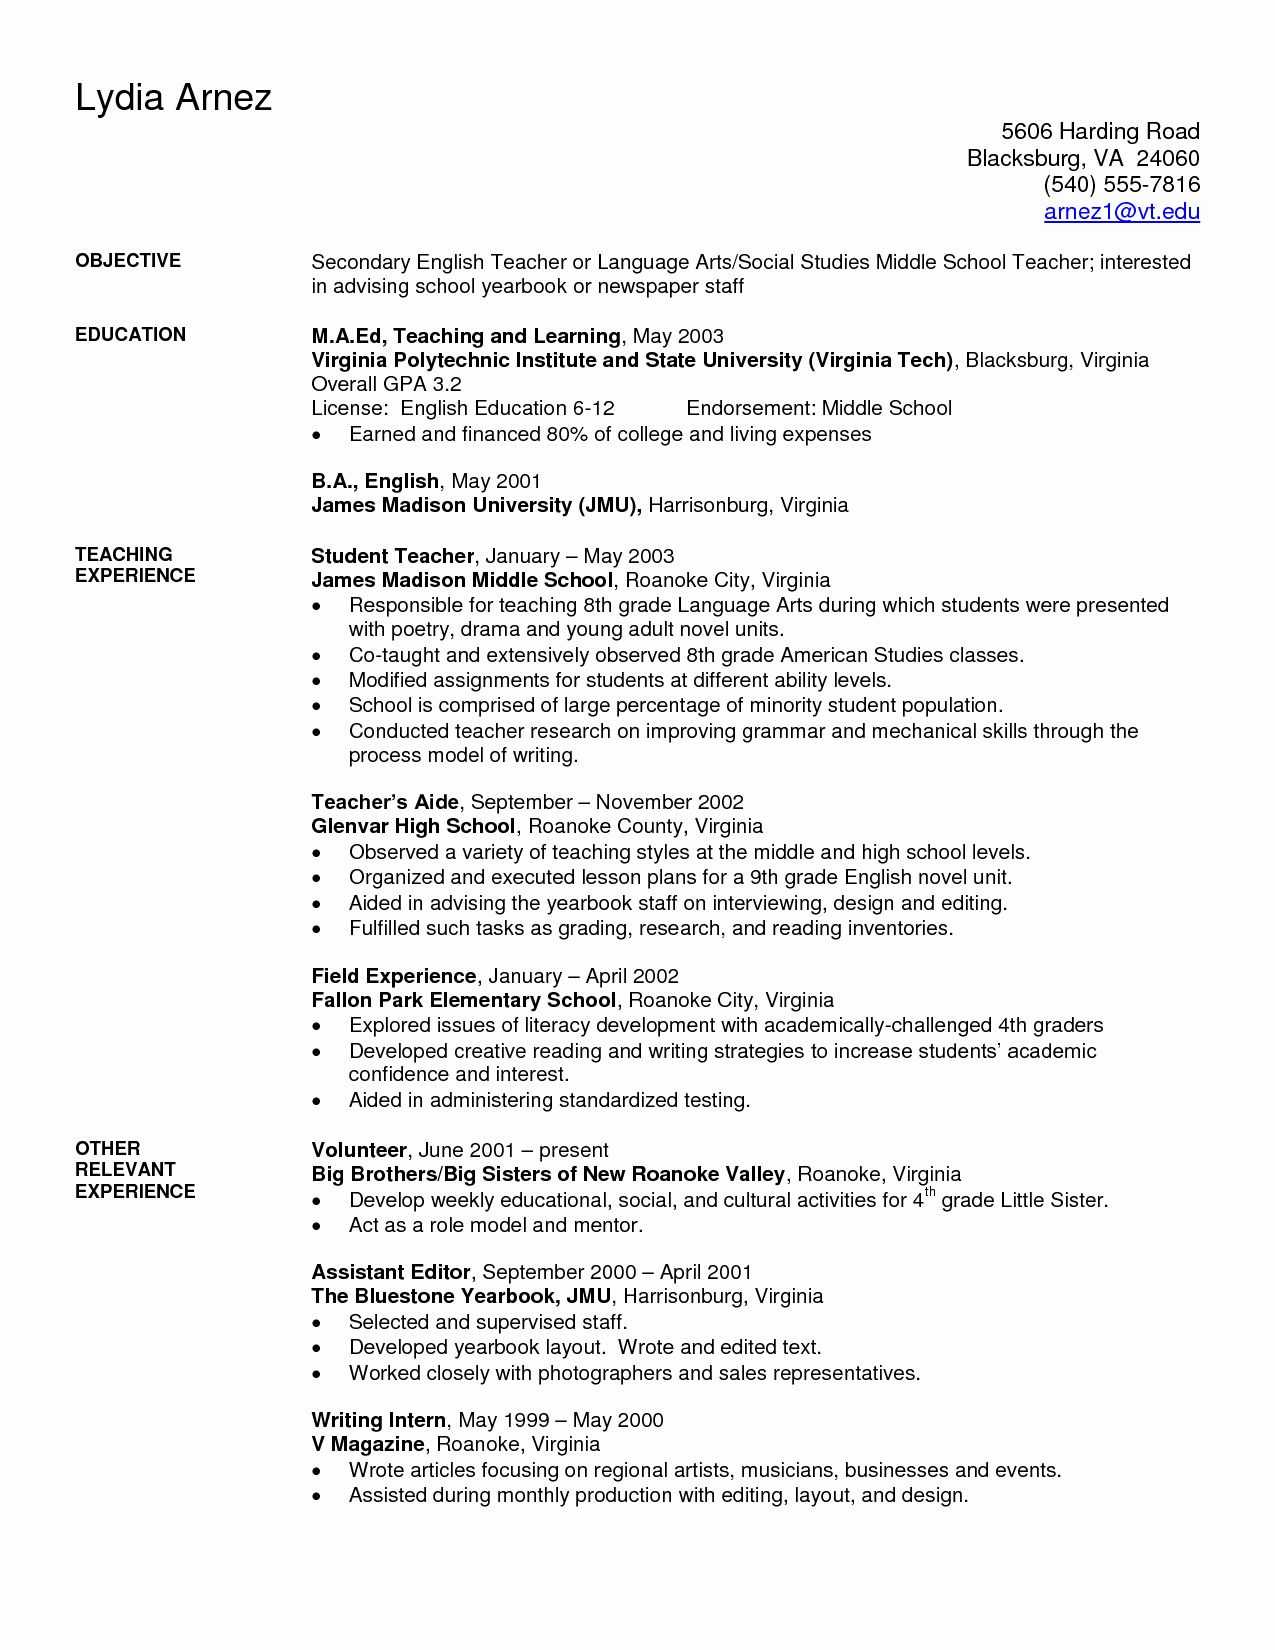 high school teacher resume examples inspirational art sample secondary elementary of Resume Sample Resume Of English Teacher For High School